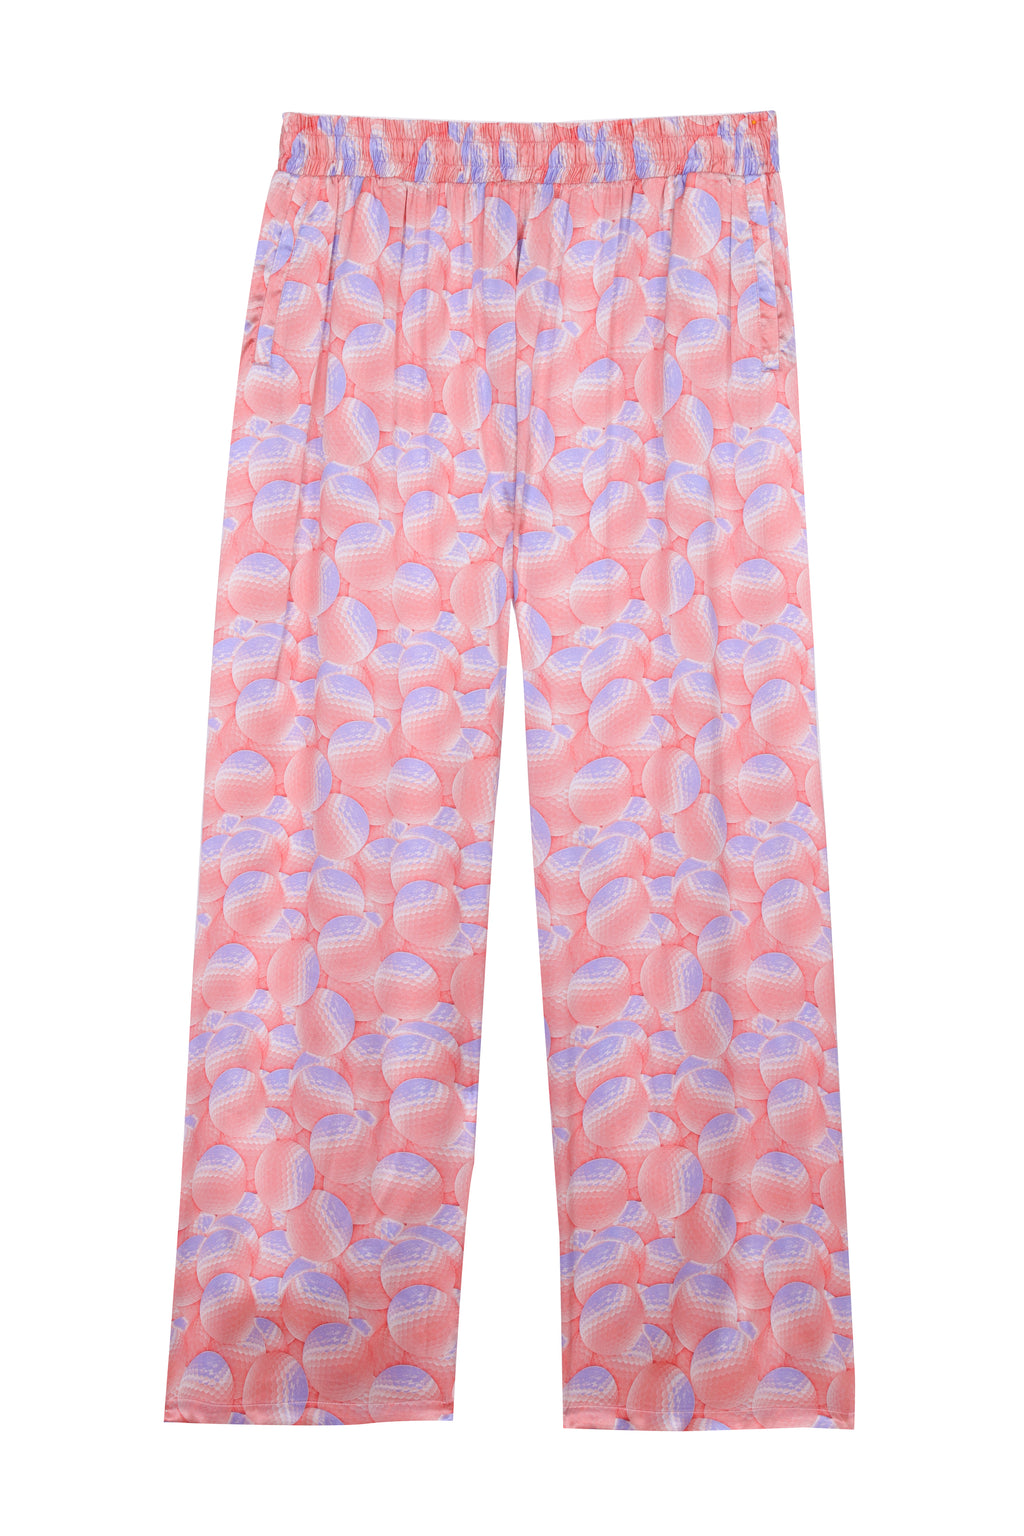 Printed Silk Pyjamas Pants (4578483372097)